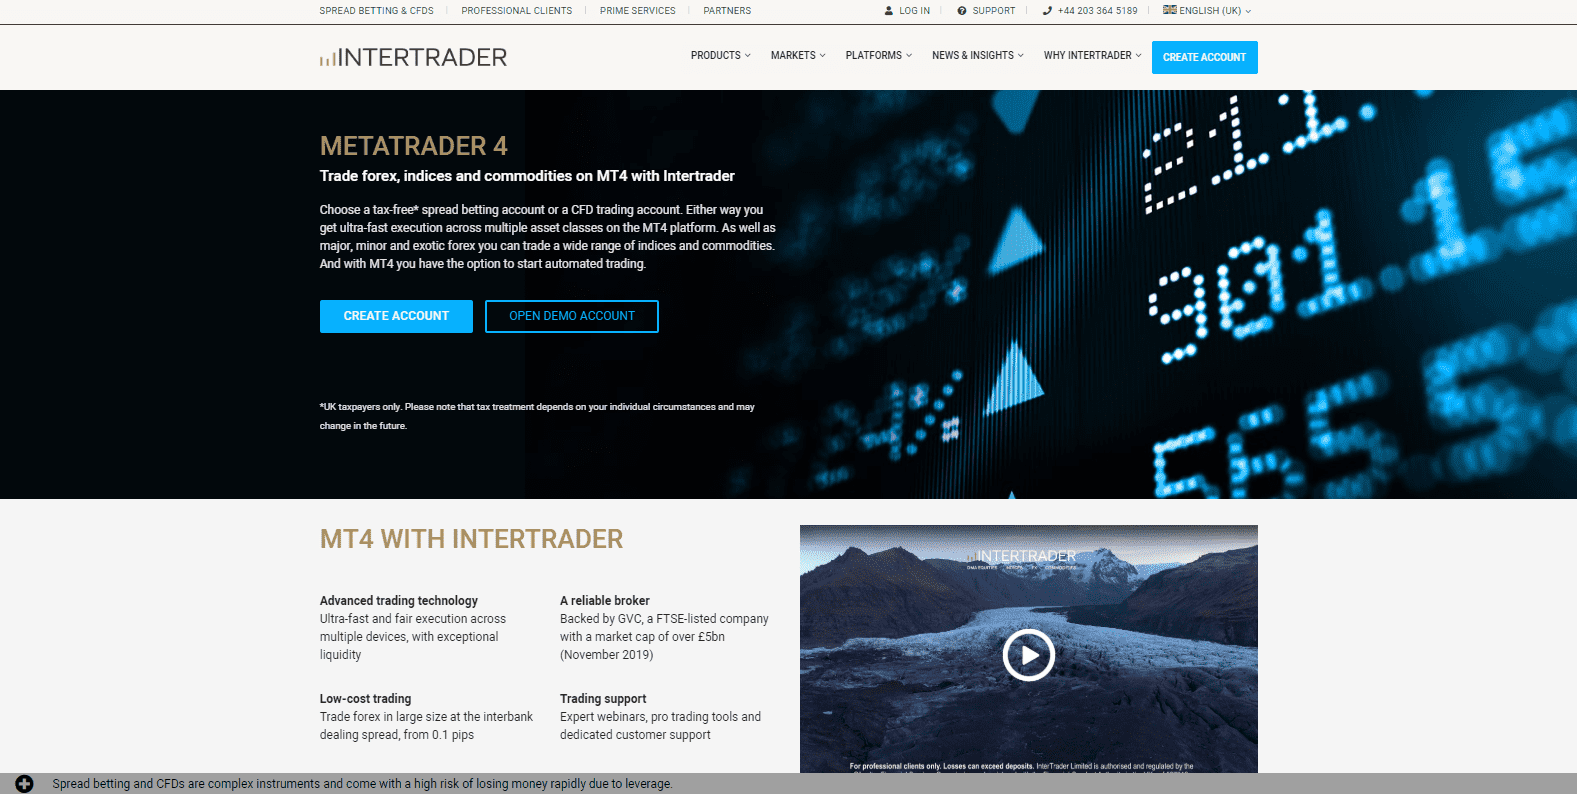 intertrader cfd trading account handelsansicht crypto currencey signal finder